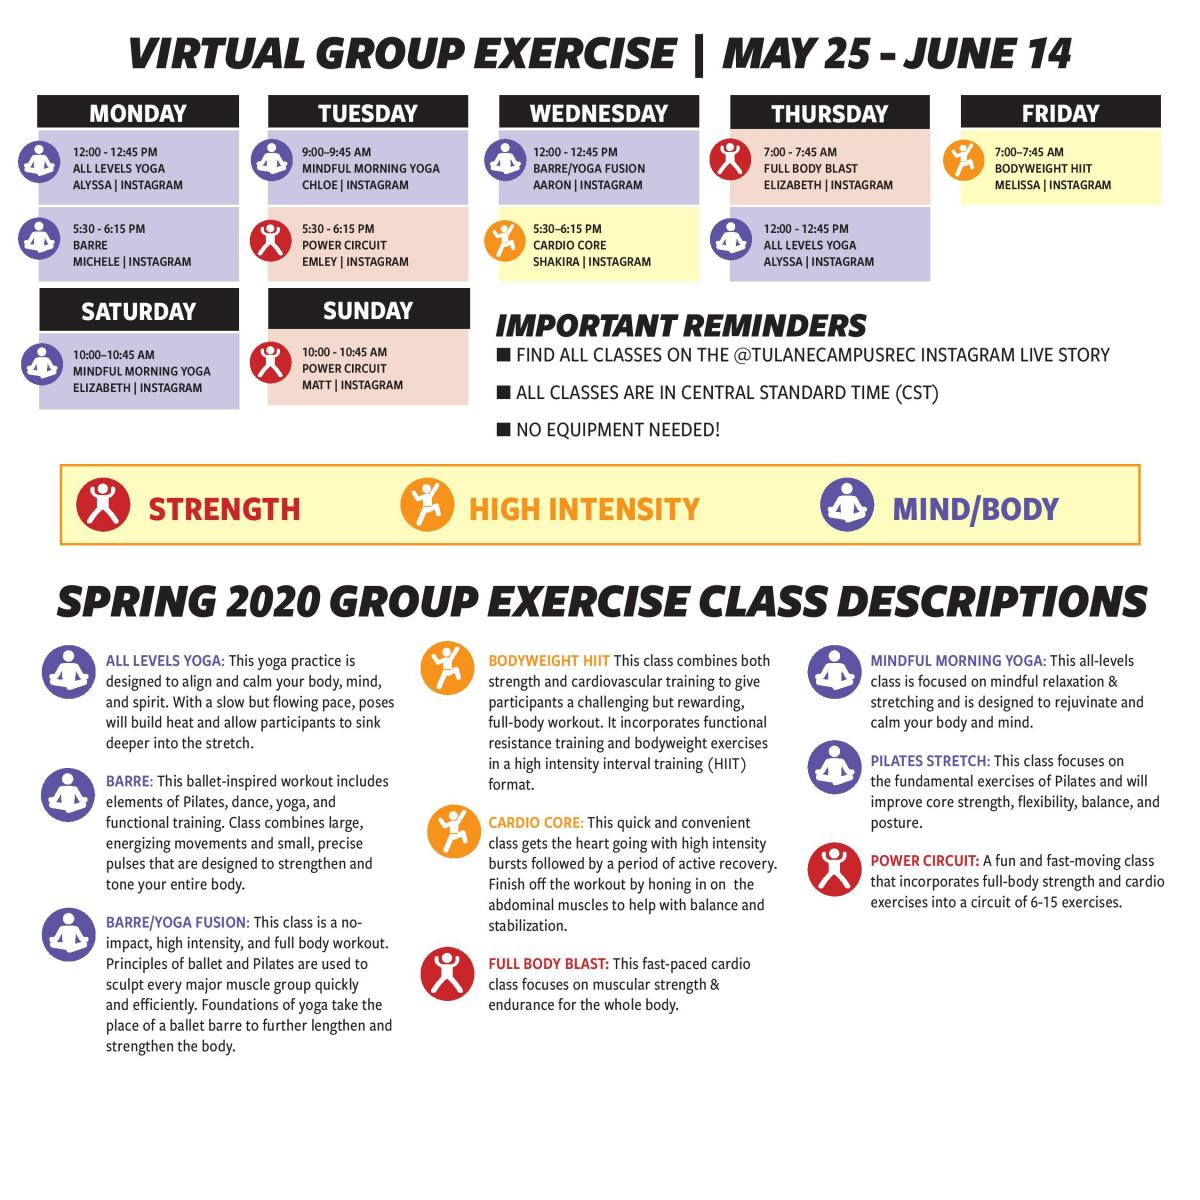 Virtual Group Exercise May 25 - June 14